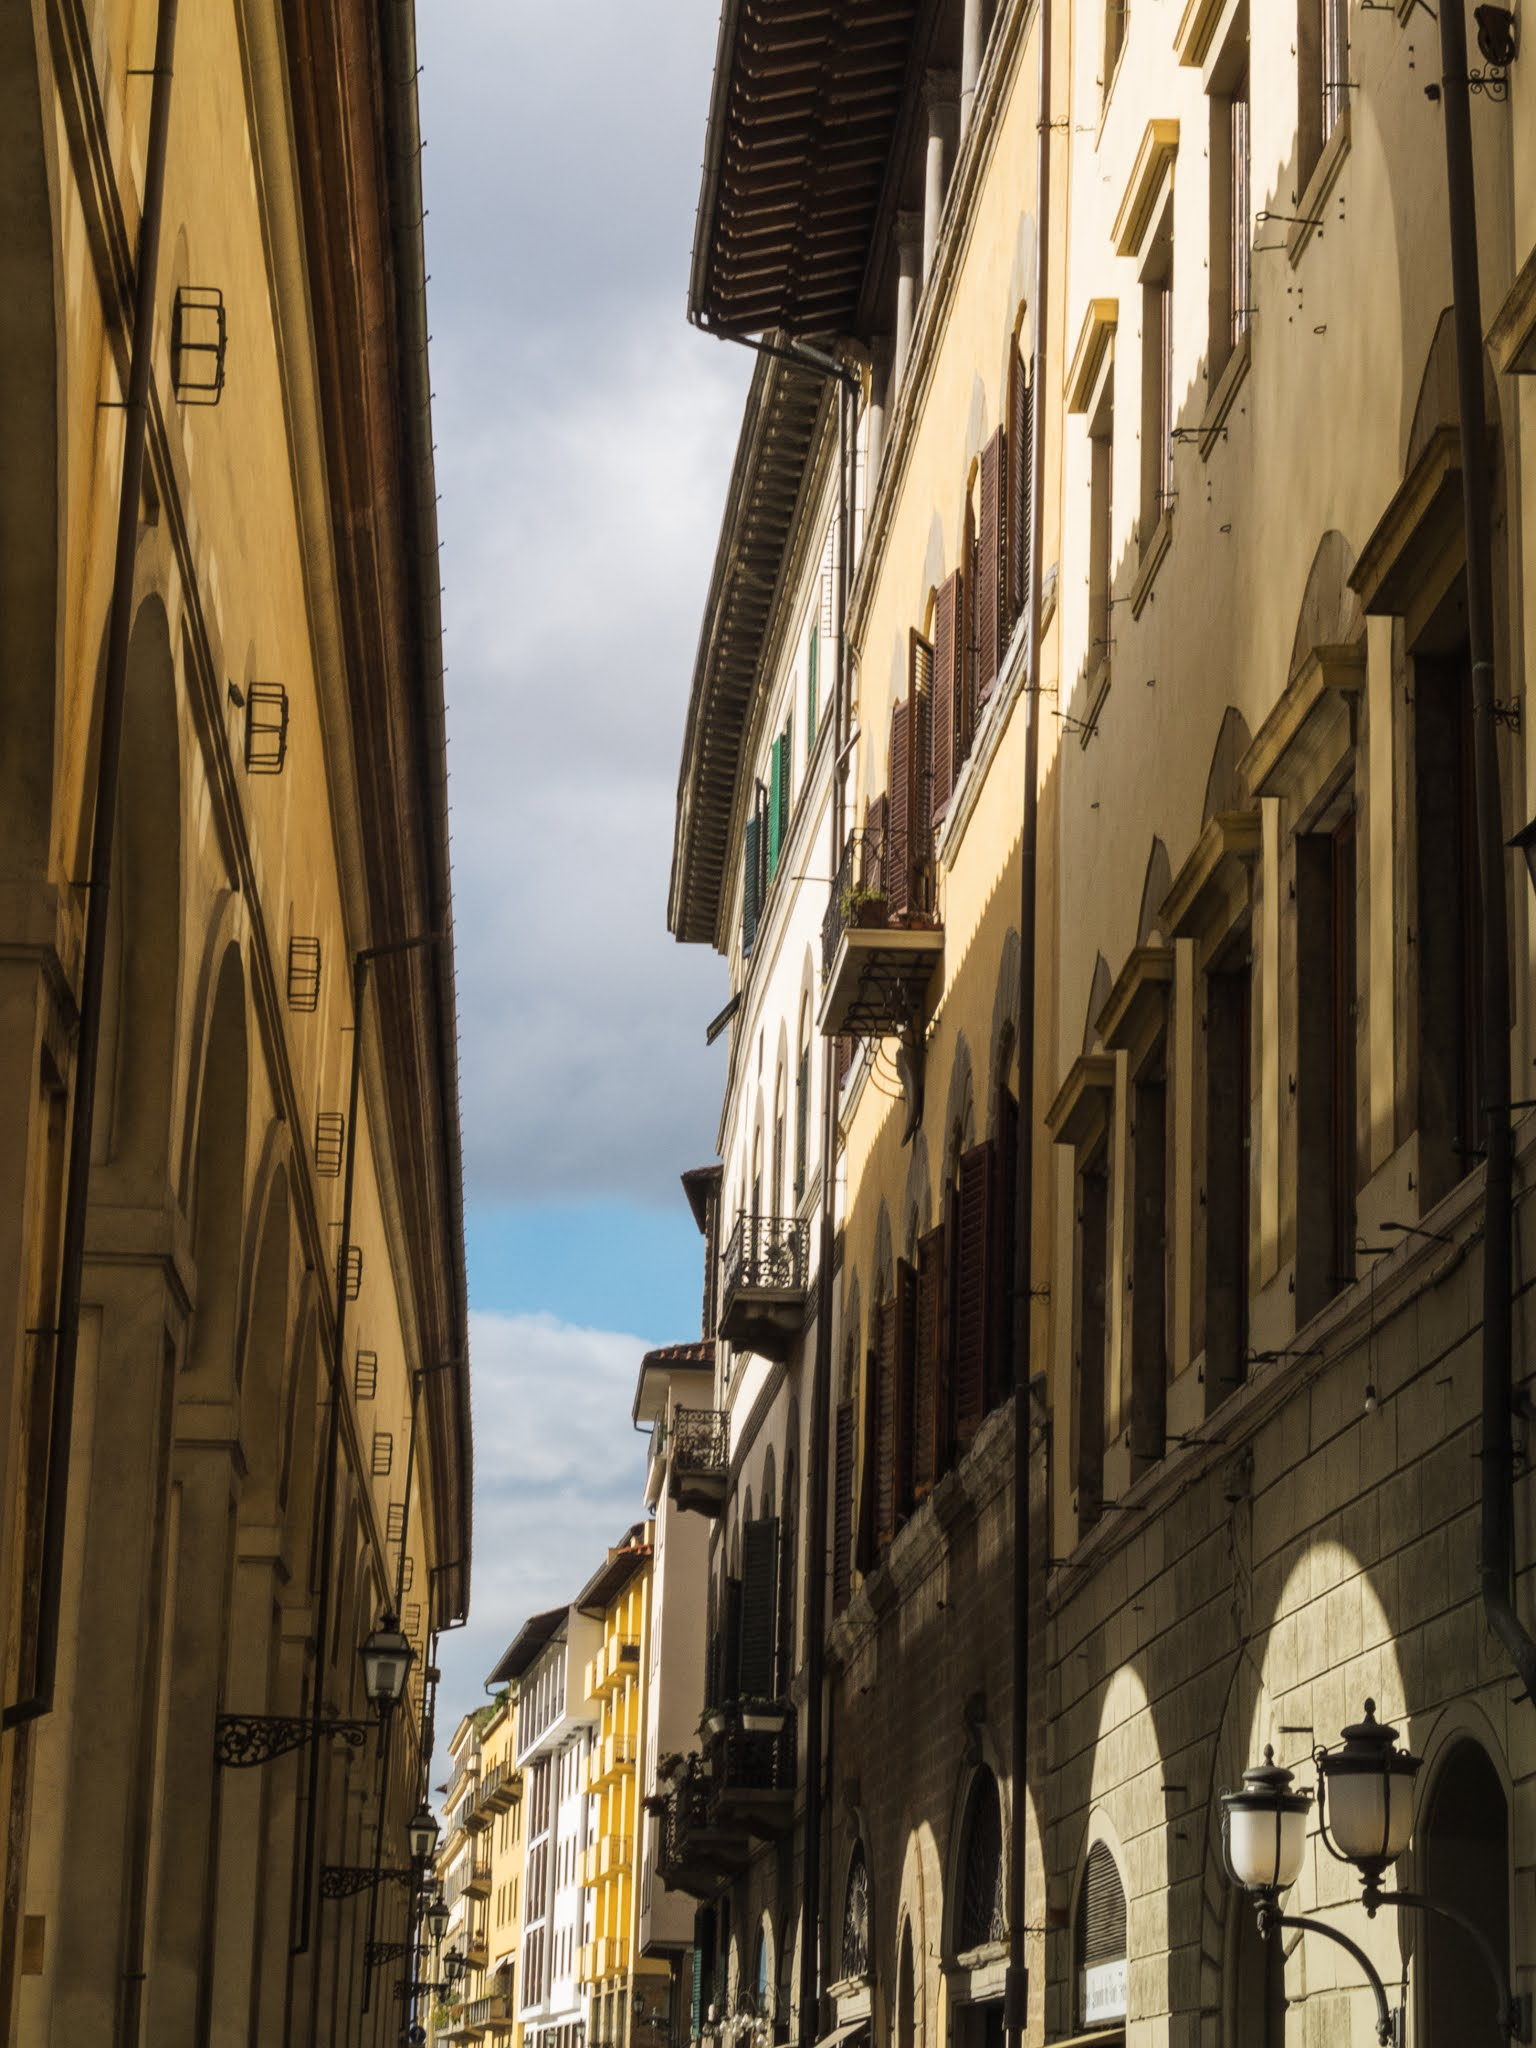 Sunlight shining on the buildings on a narrow street in Florence.